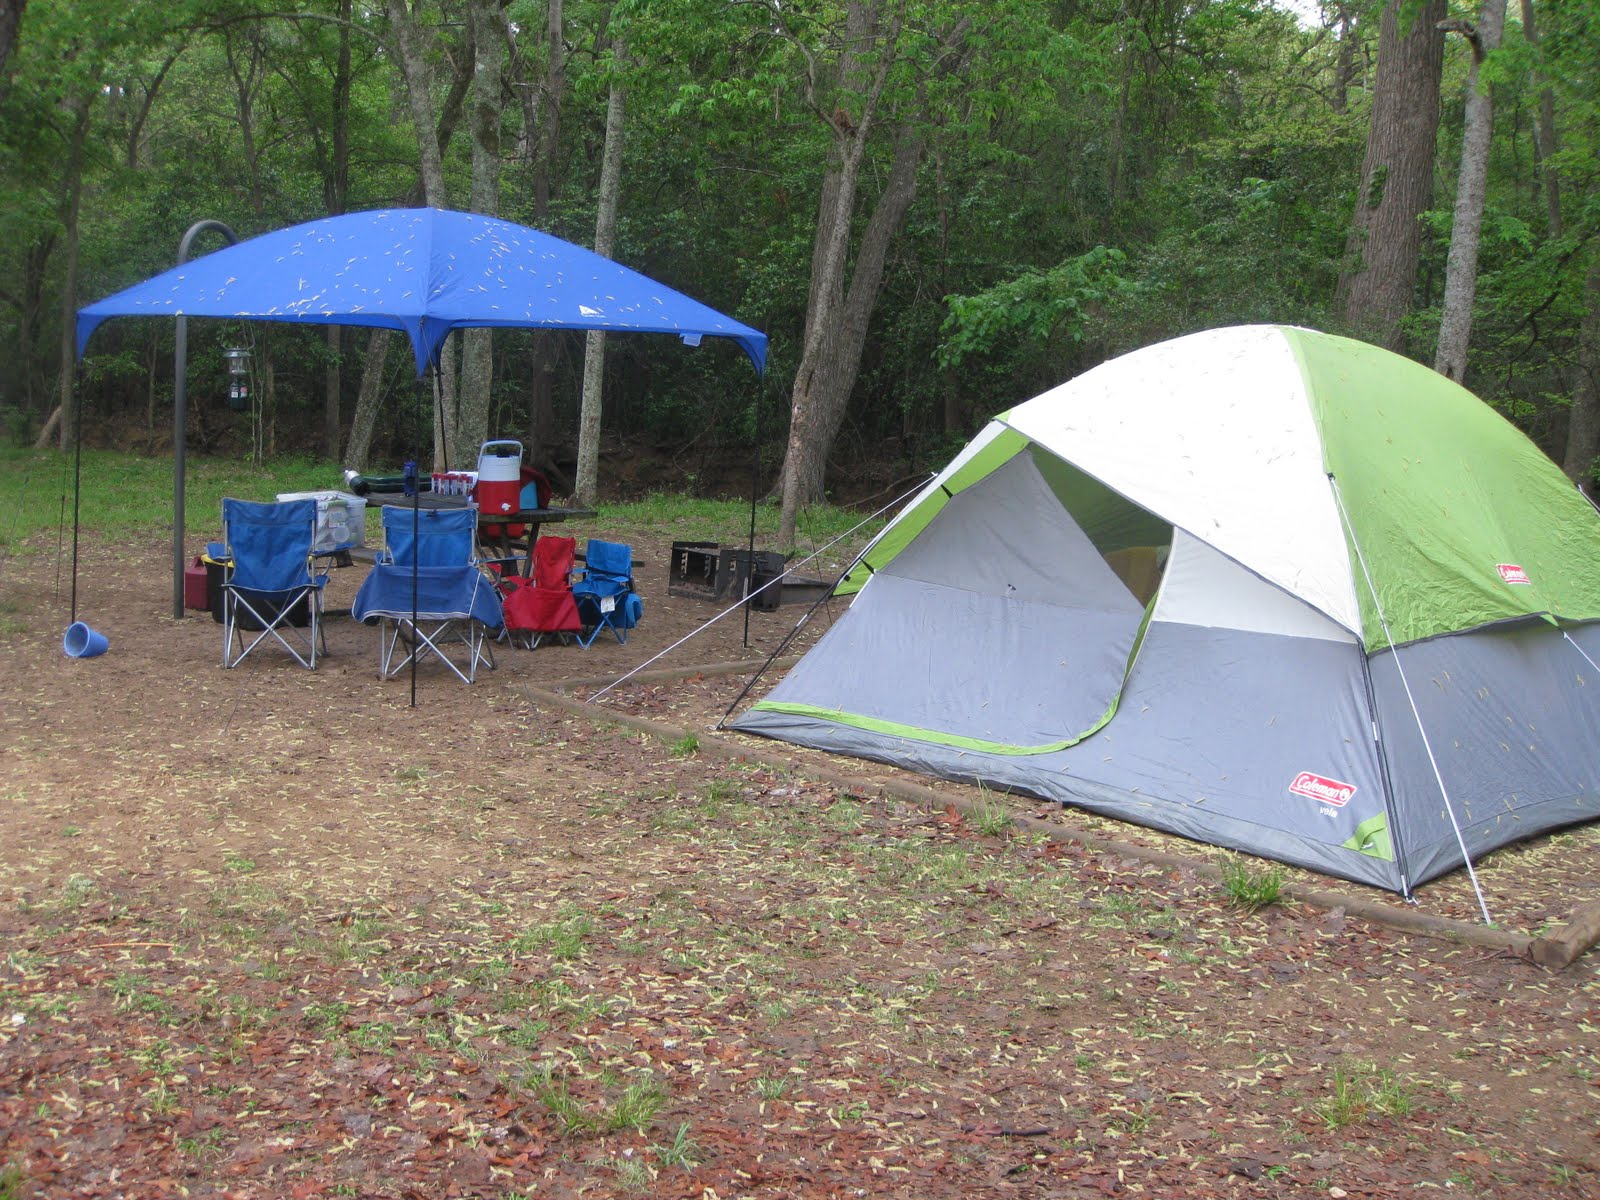 camping trip Camping trip-this weekend is going to be amazing, because i am about to depart for my first camping trip help me pack my stuff and wish me good luck, girls.